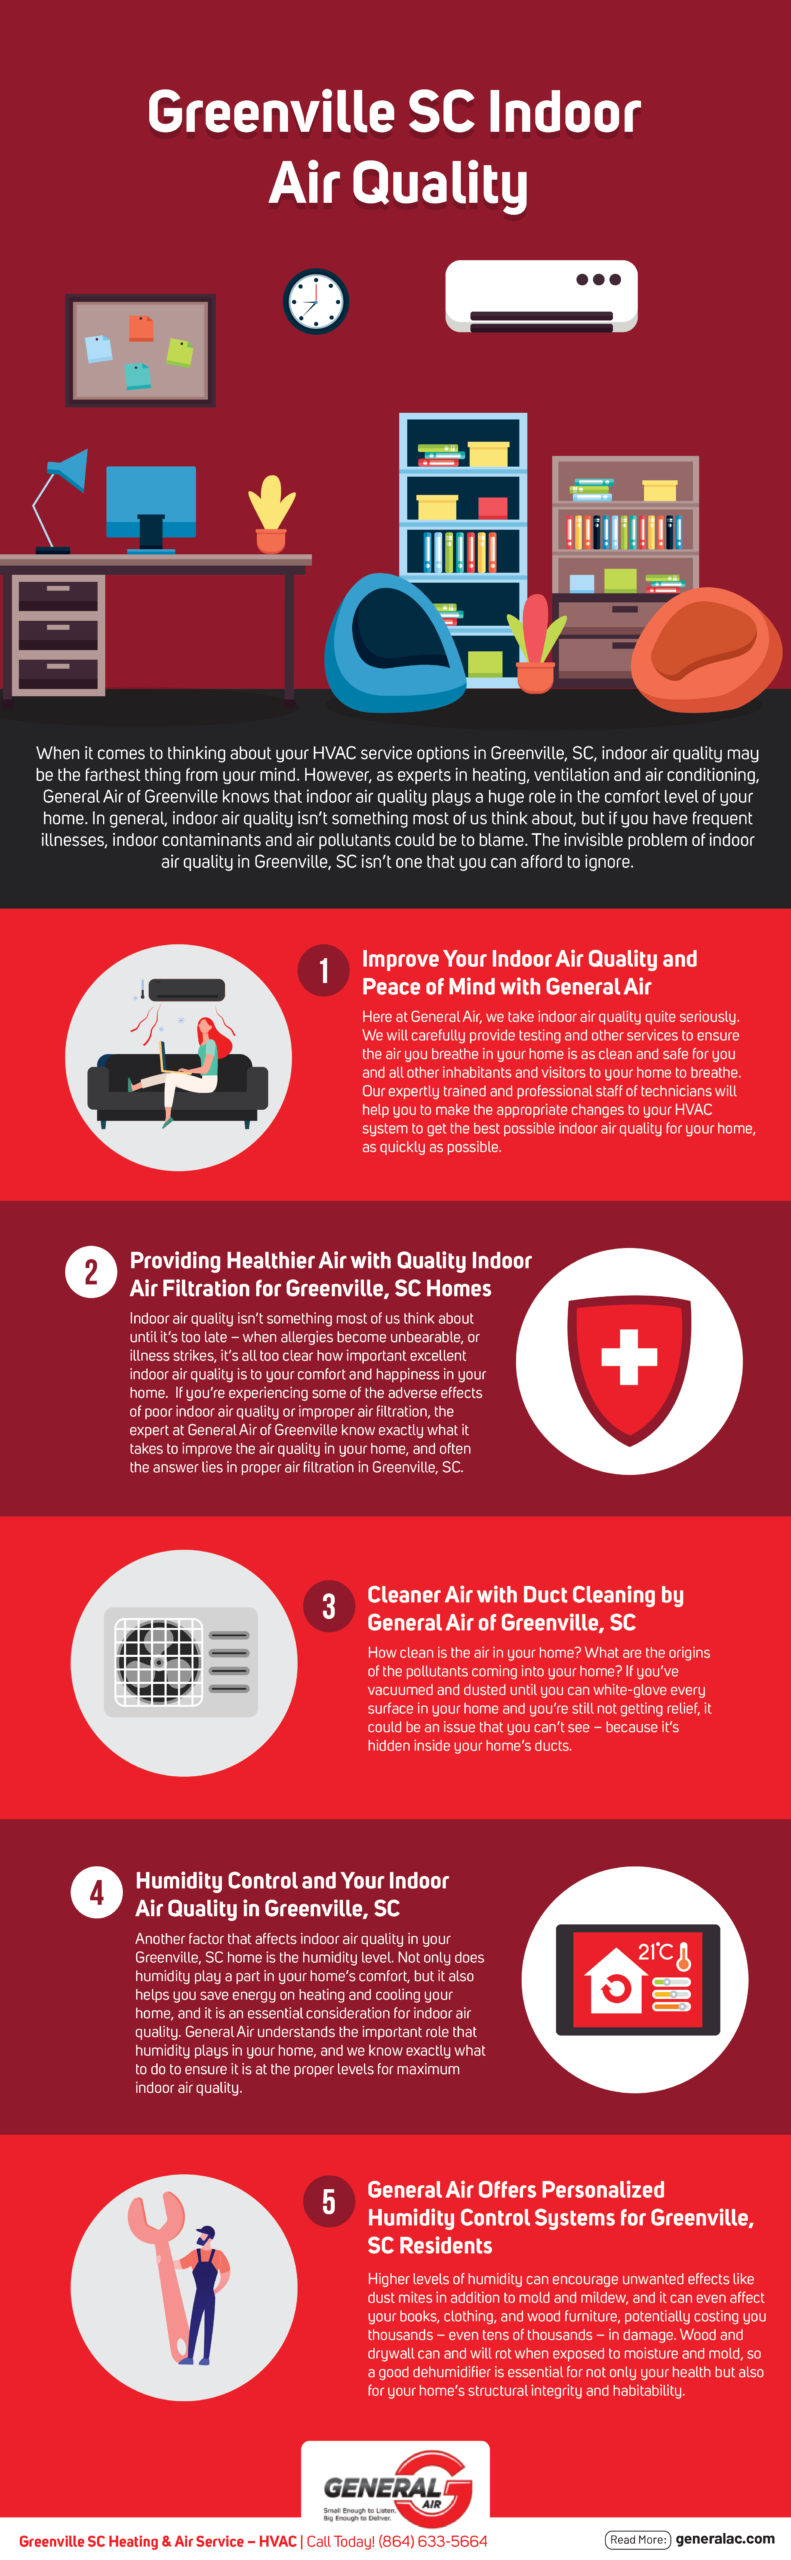 Greenville Indoor Air Quality Infographic